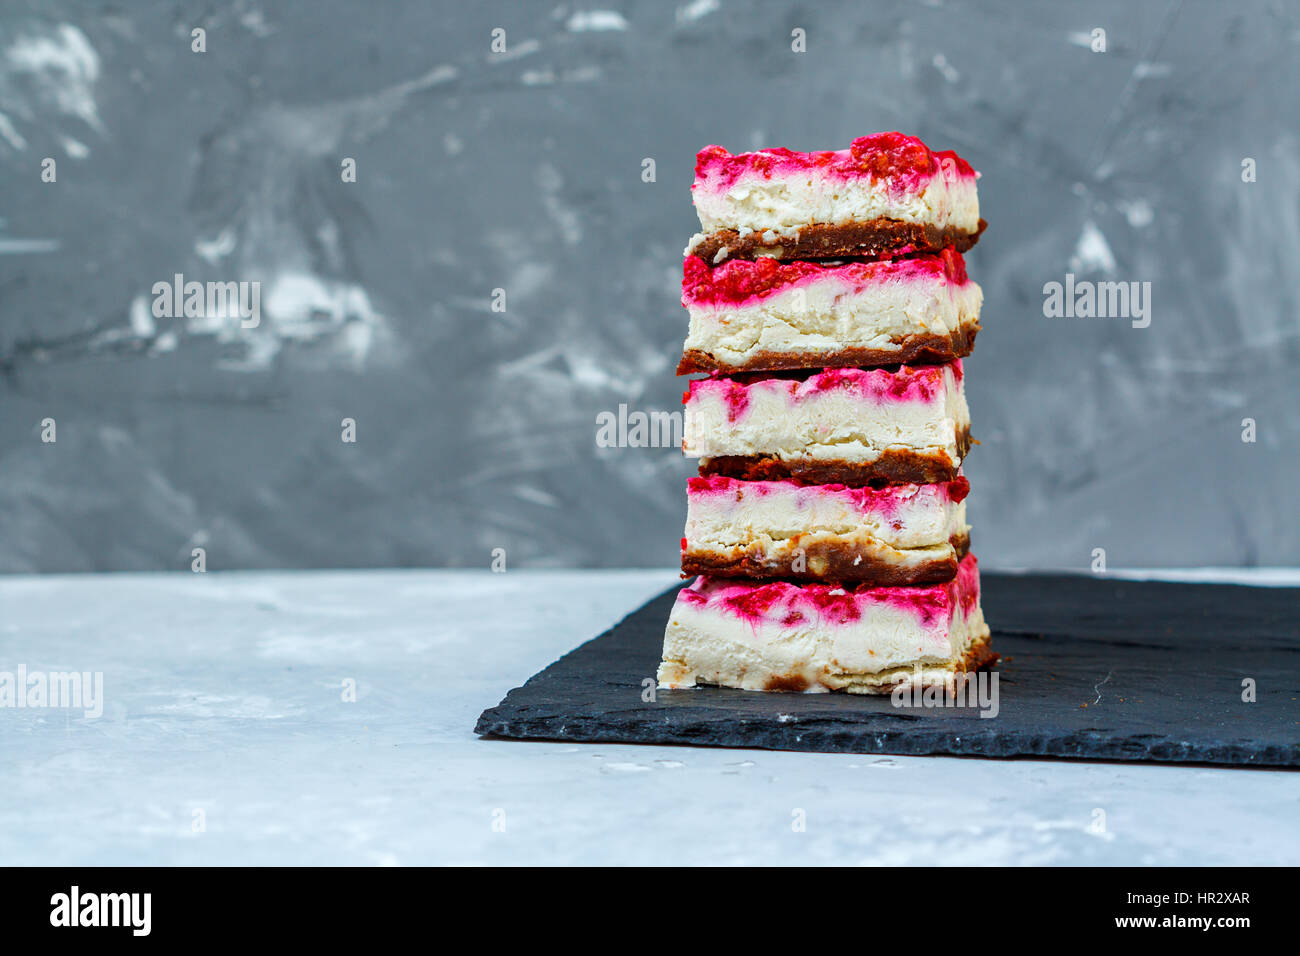 Vegan raw raspberry cheesecake on a dark background. Love for a healthy vegan food concept - Stock Image